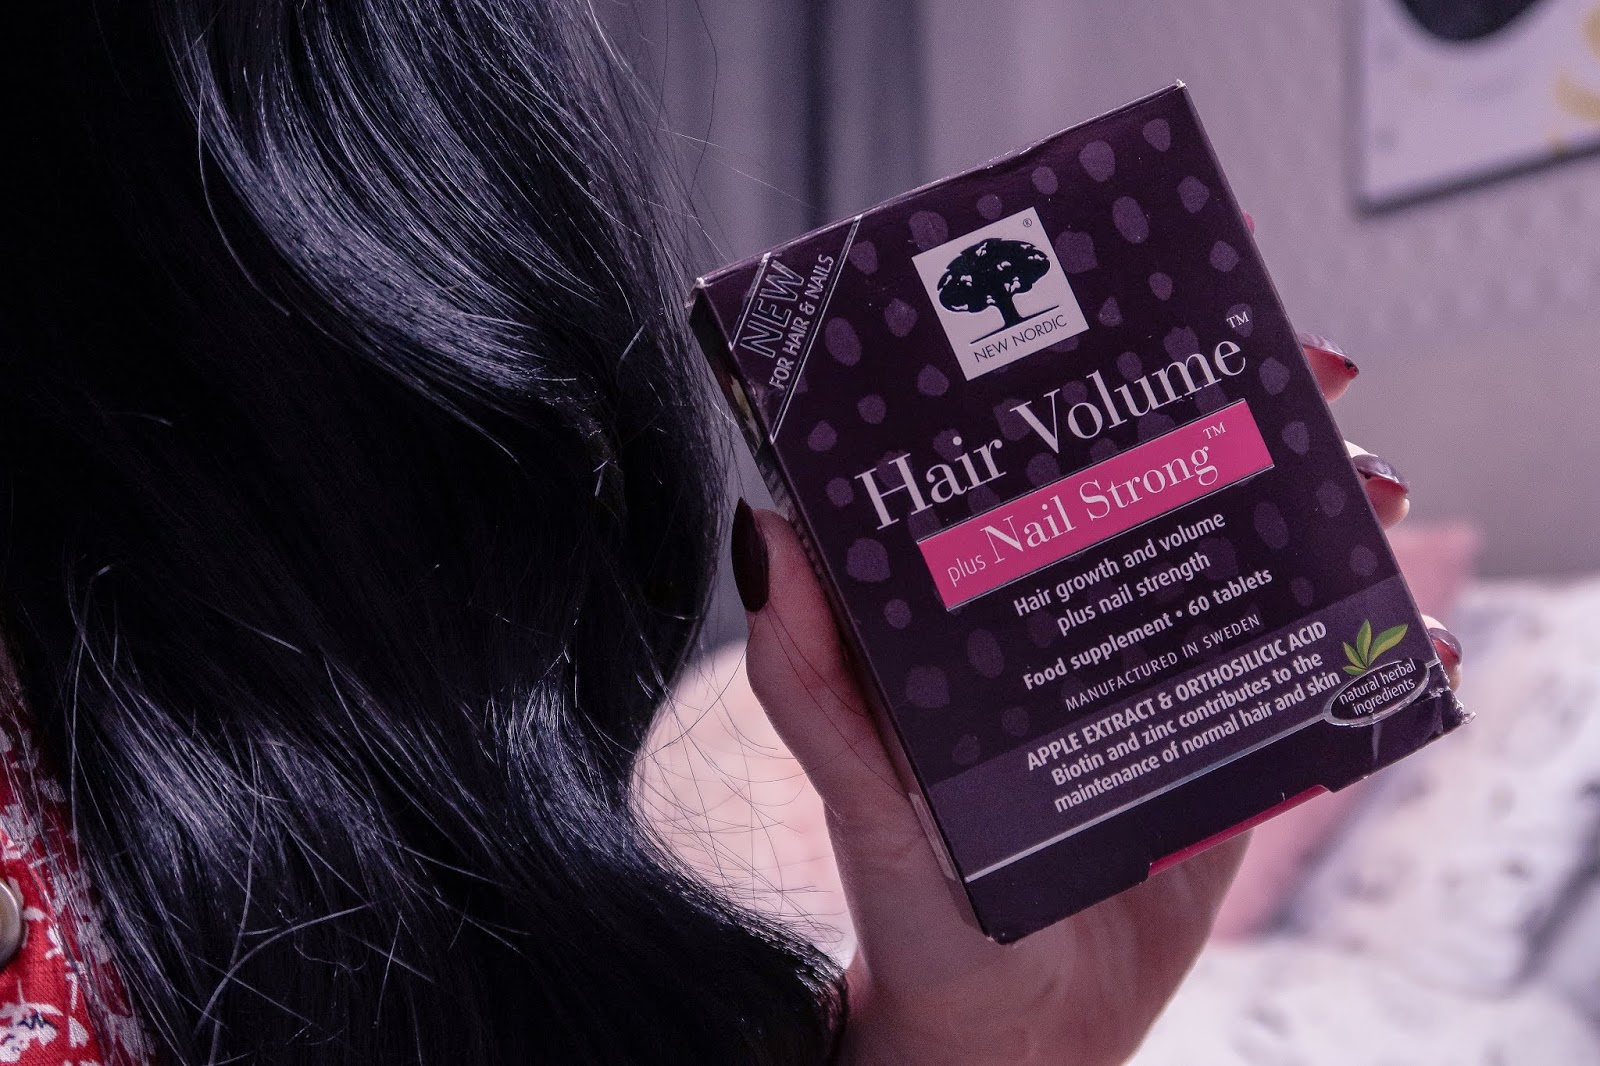 Close up photo of girl holding New Nordic Hair Volume plus Nail Strong Supplements - Wearing a red dress with white flowers, long black curled hair over left shoulder, New Nordic Supplements box is dark purple with white writing.